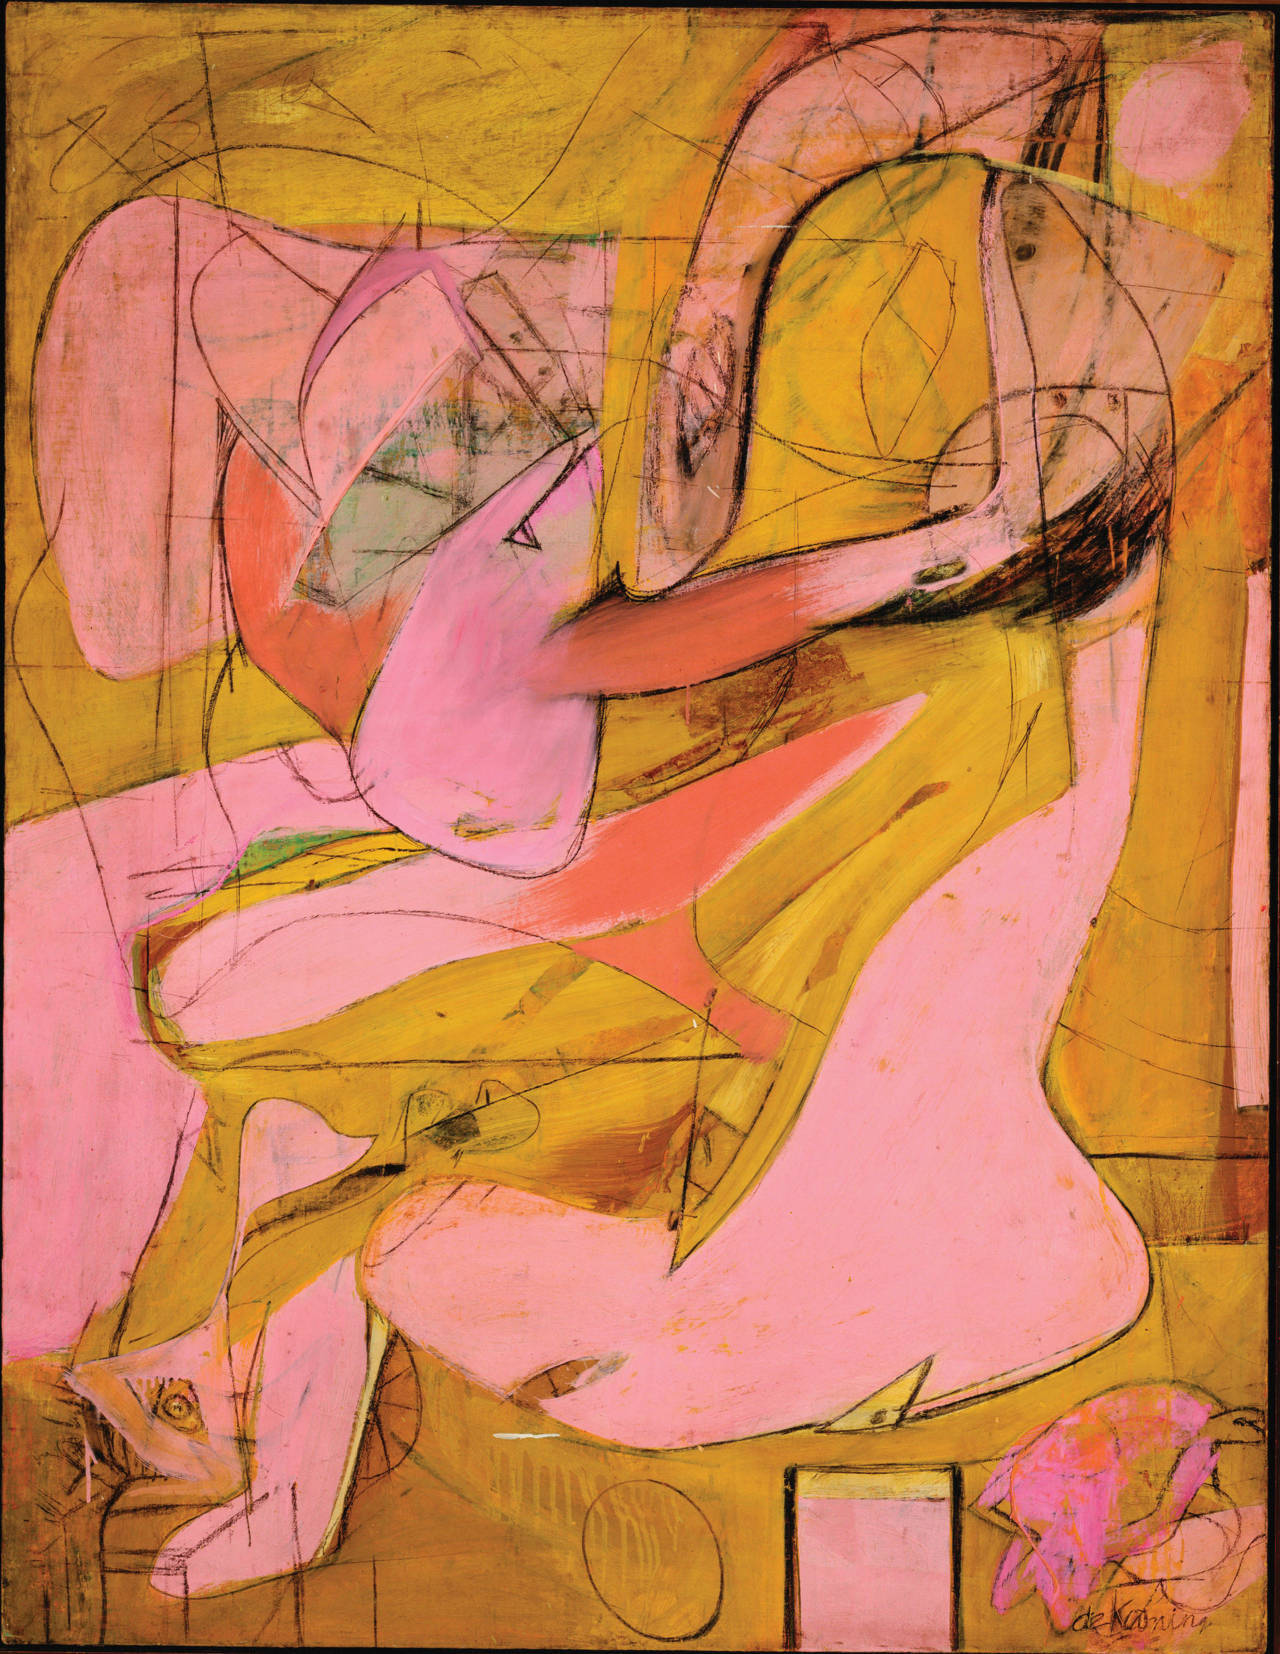 Pink Angels | Willem de Kooning | 1945It's the great Willem de Kooning's 108th birthday today. Such a fantastic artist who I admire very much. Allow me to share a few of my favourites…